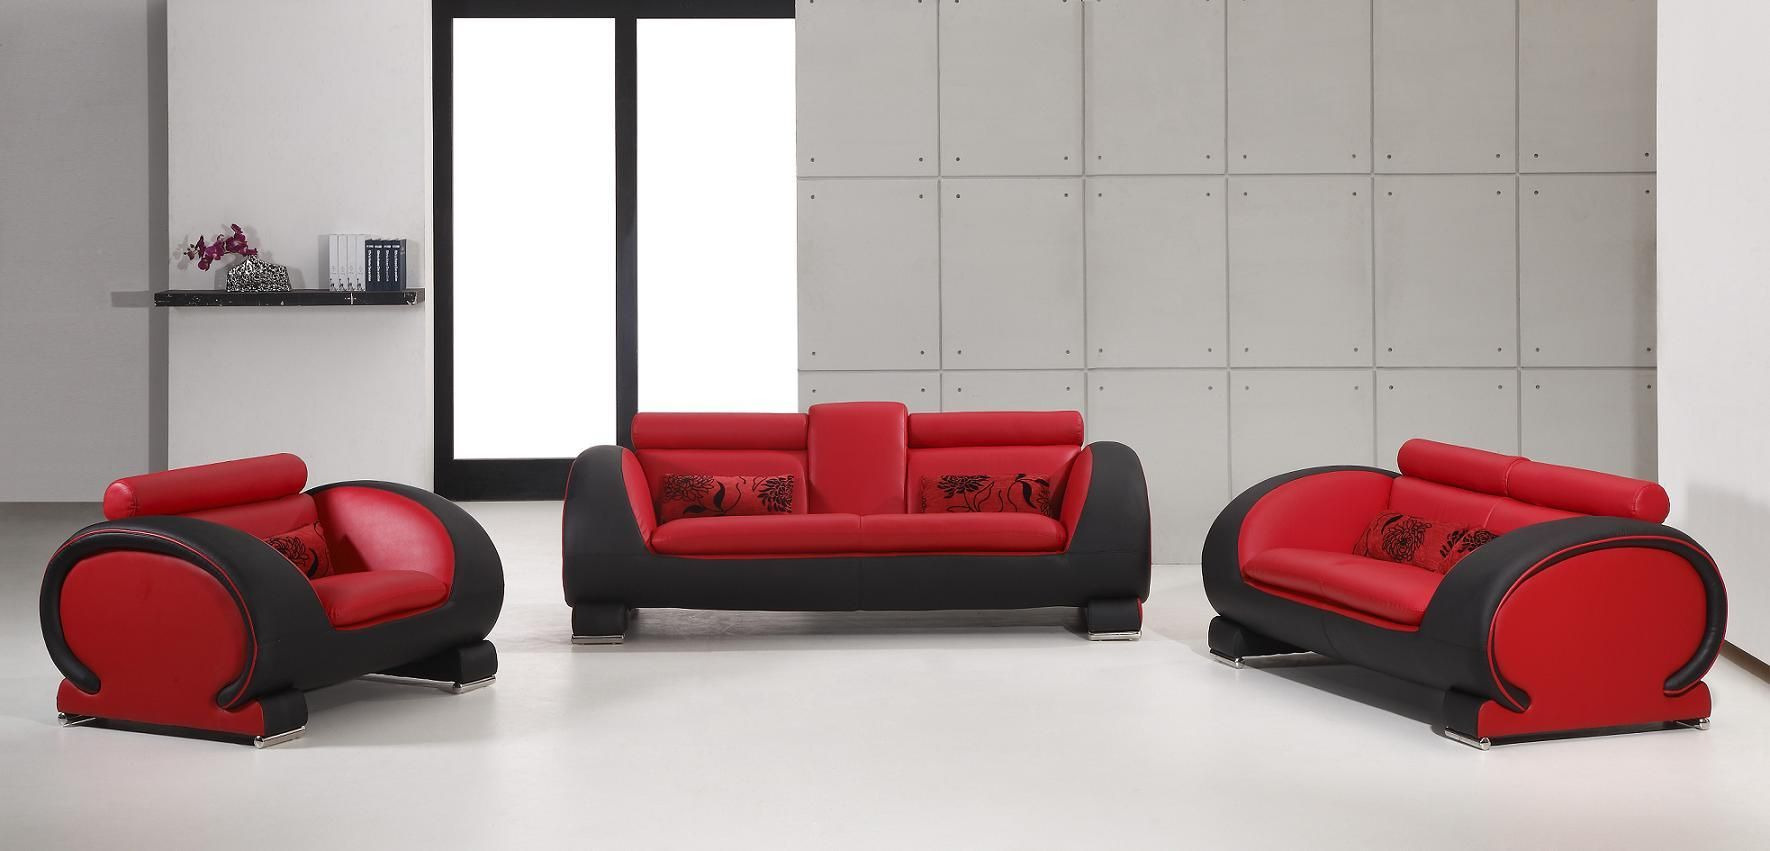 Living Room Interior Featured Cool Red And Black Couch Design Plus Lovely  Floating Shelf Decor Cool